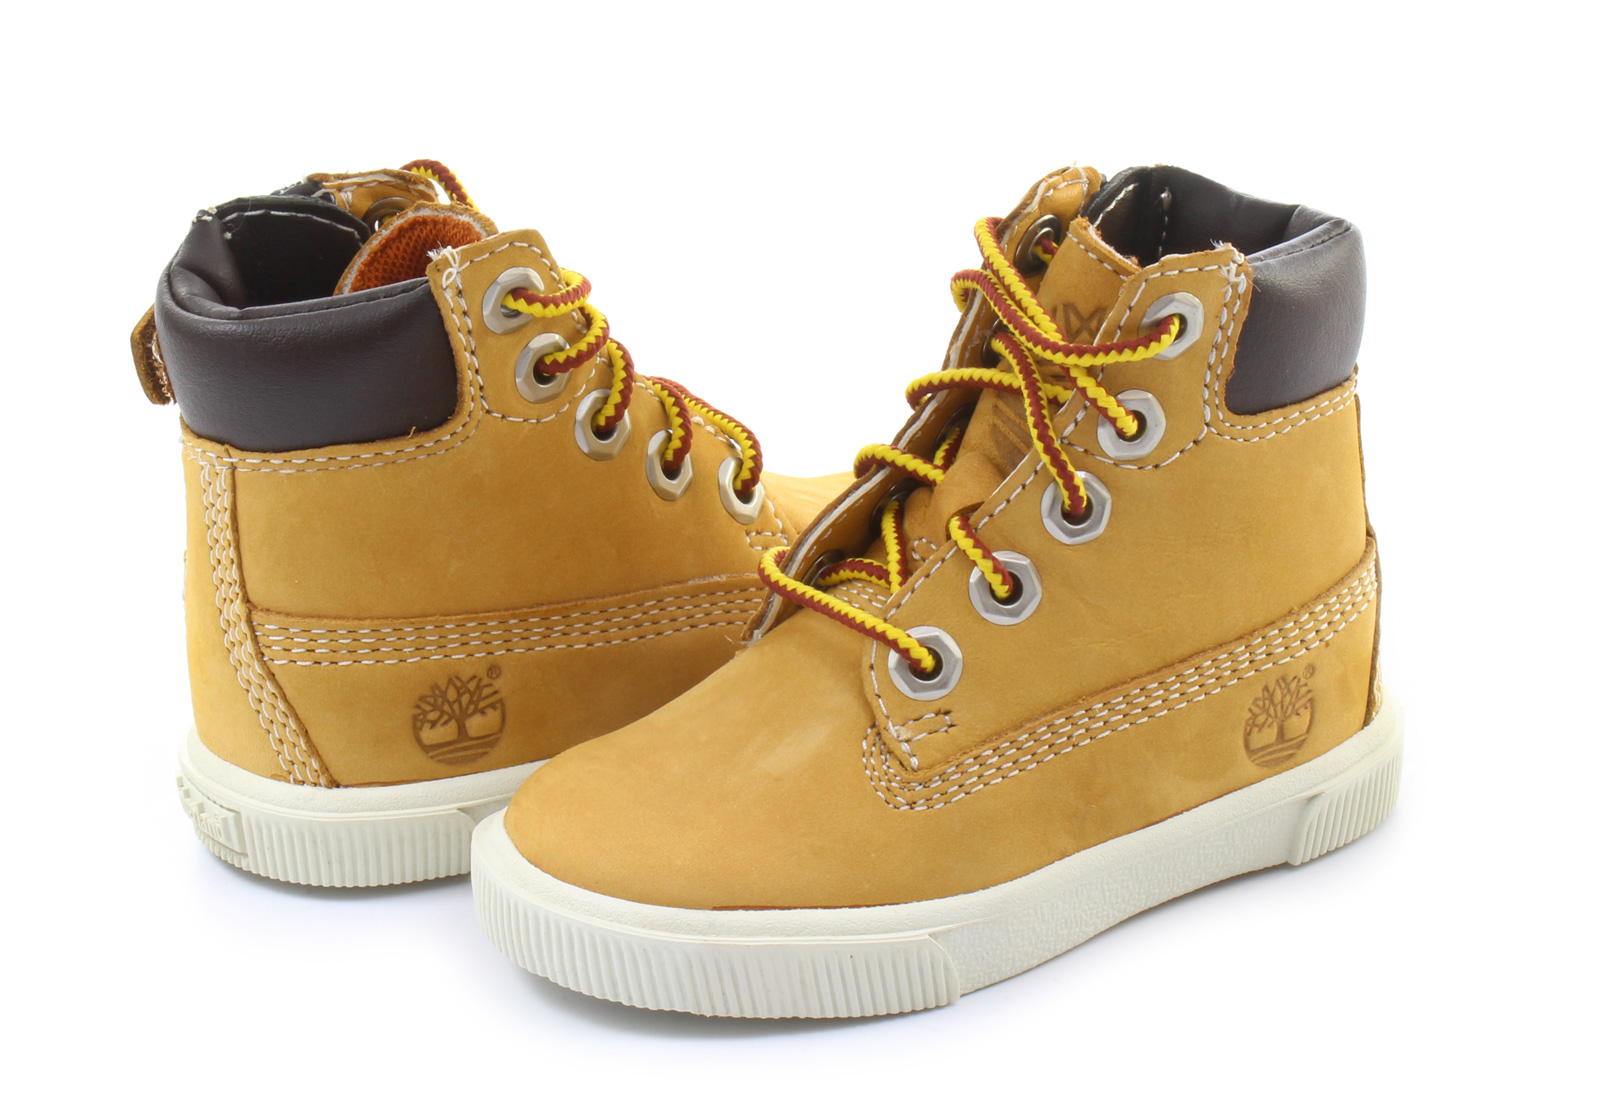 Timberland Topánky - Slim Cupsole - 6787R-WHE - Tenisky 2fed5deb615